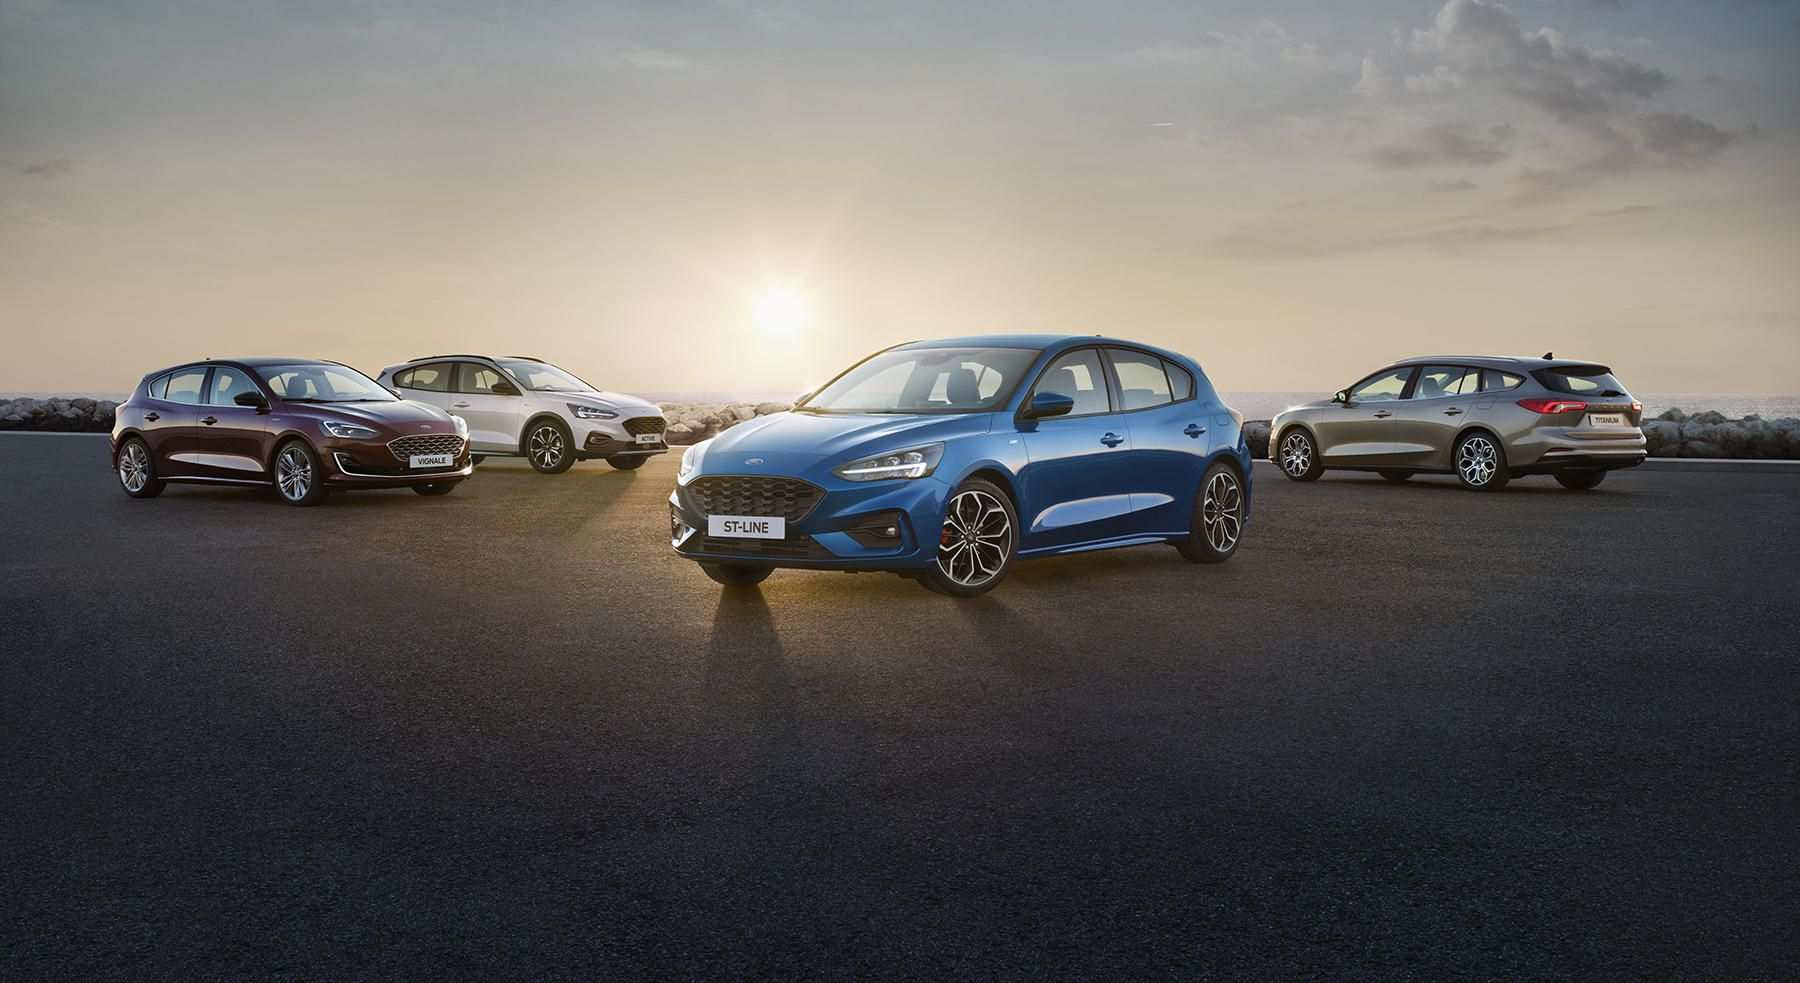 45 The Best 2019 Ford Vehicle Lineup Reviews